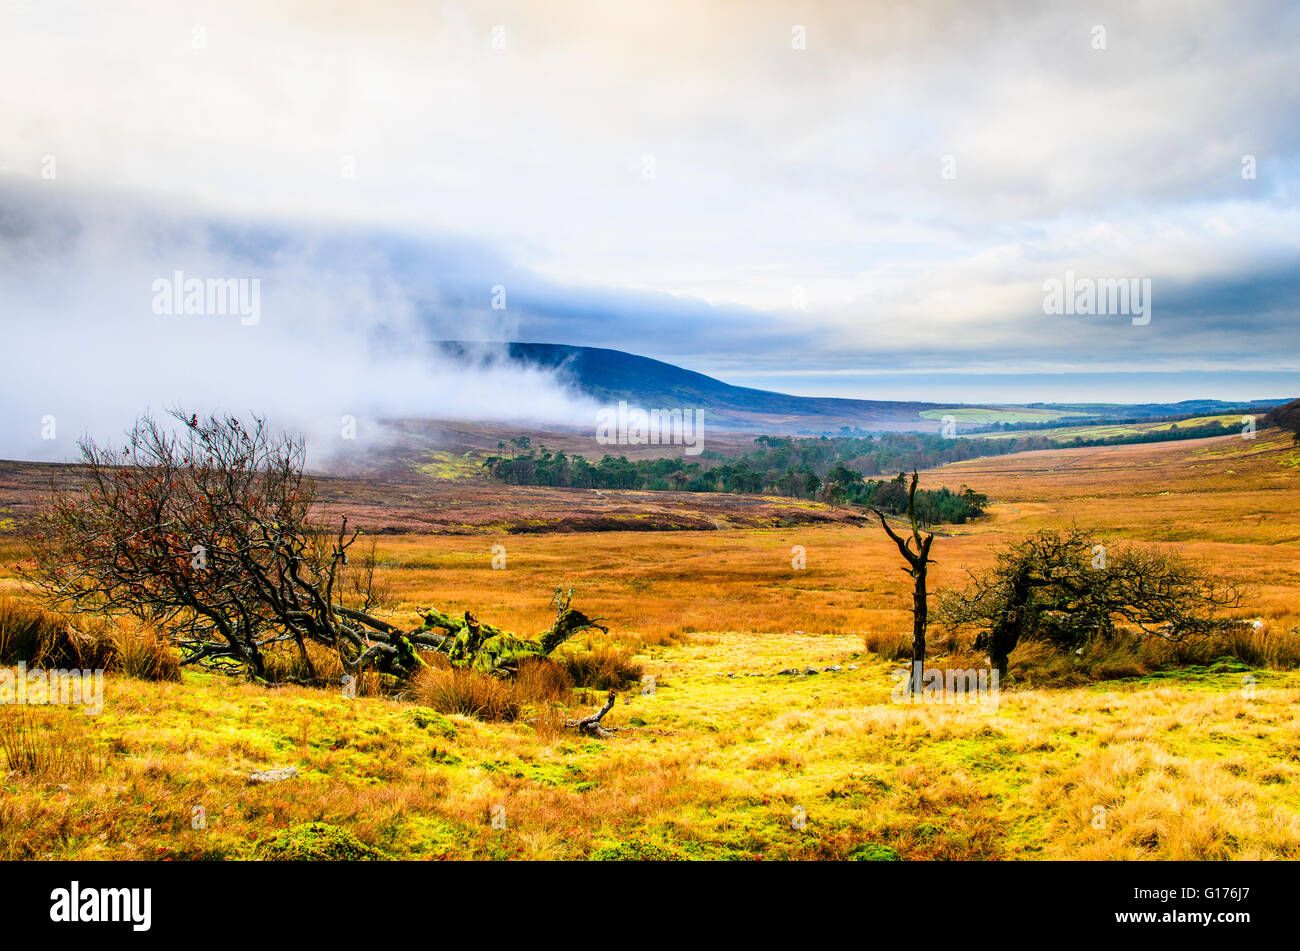 Mist and cloud in Wyresdale in the Bowland Fells near Lancaster Lancashire England looking towards Hawthornthwaite - Stock Image